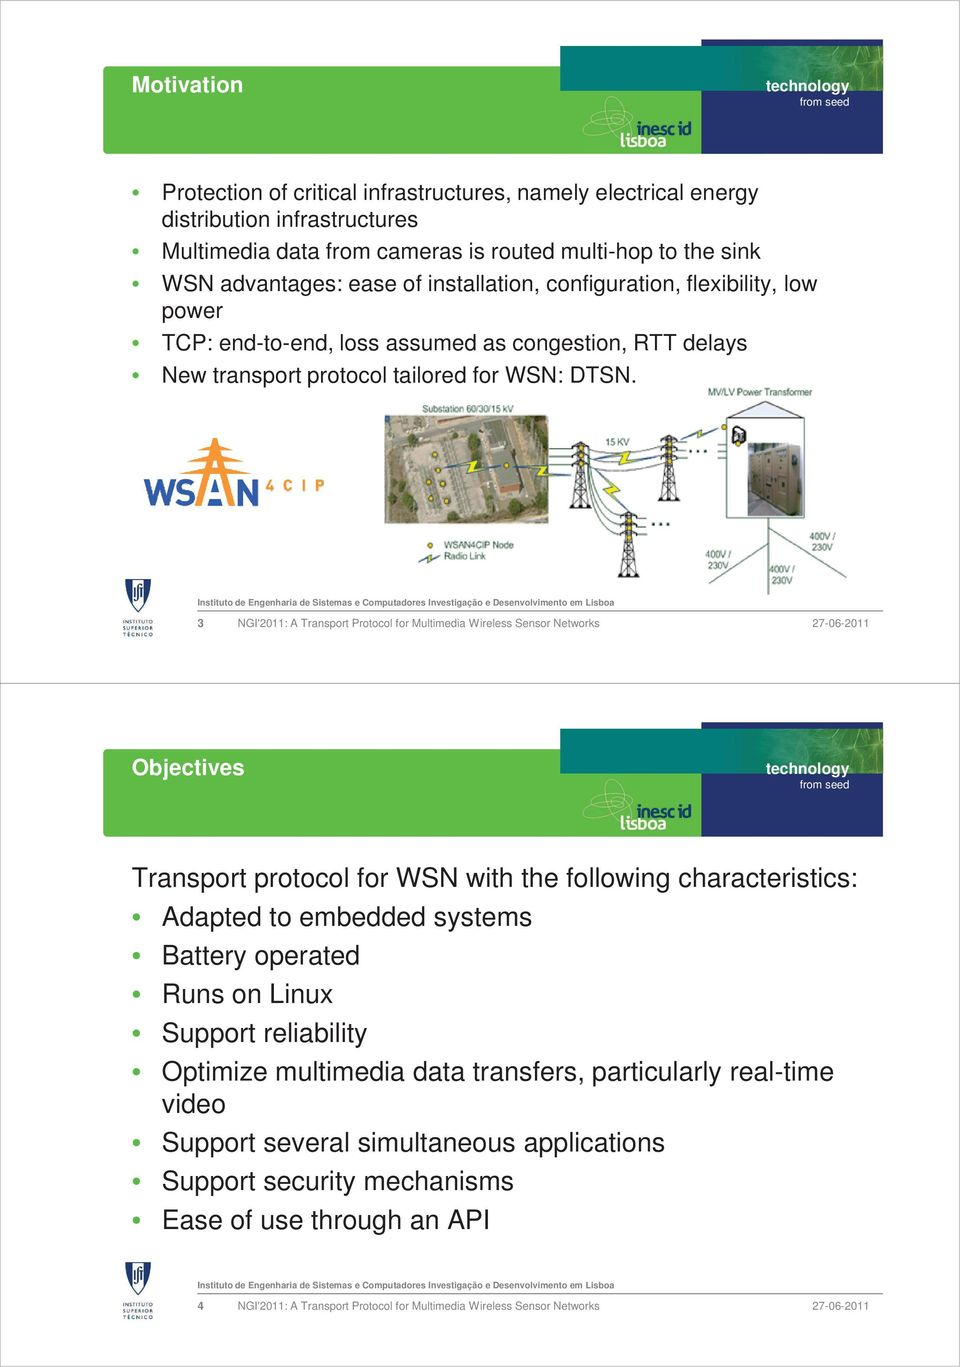 3 NGI'2011: A Transport Protocol for Multimedia Wireless Sensor Networks Objectives Transport protocol for WSN with the following characteristics: Adapted to embedded systems Battery operated Runs on